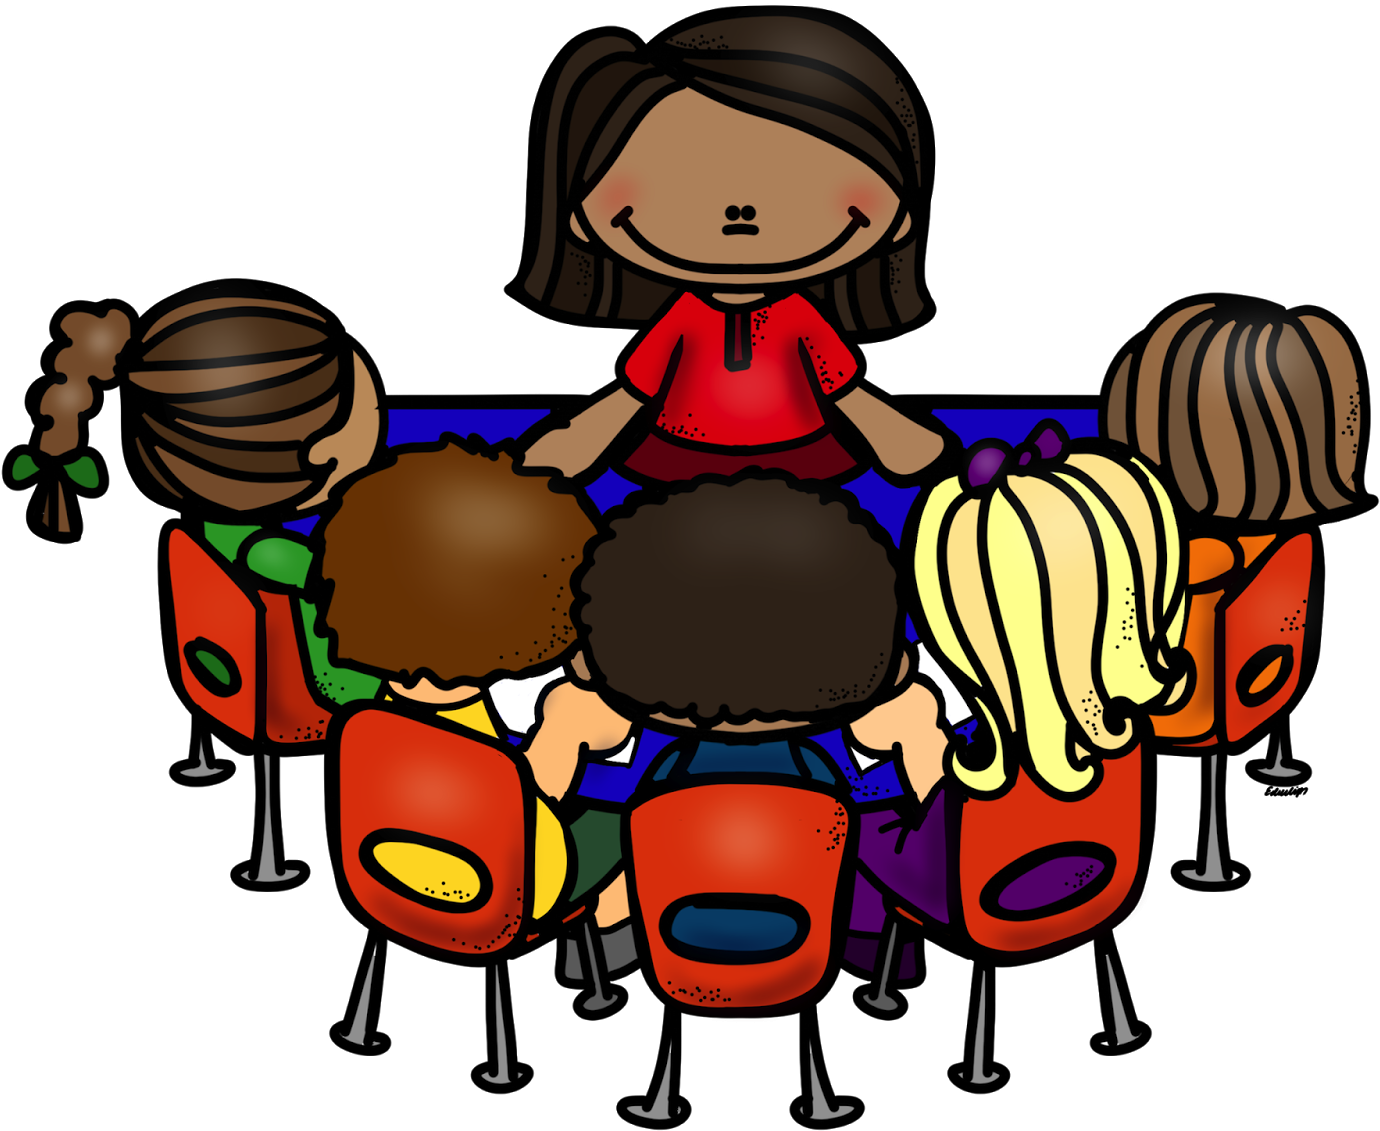 reading group cliparts - teacher table clip art - (1600x1200) png